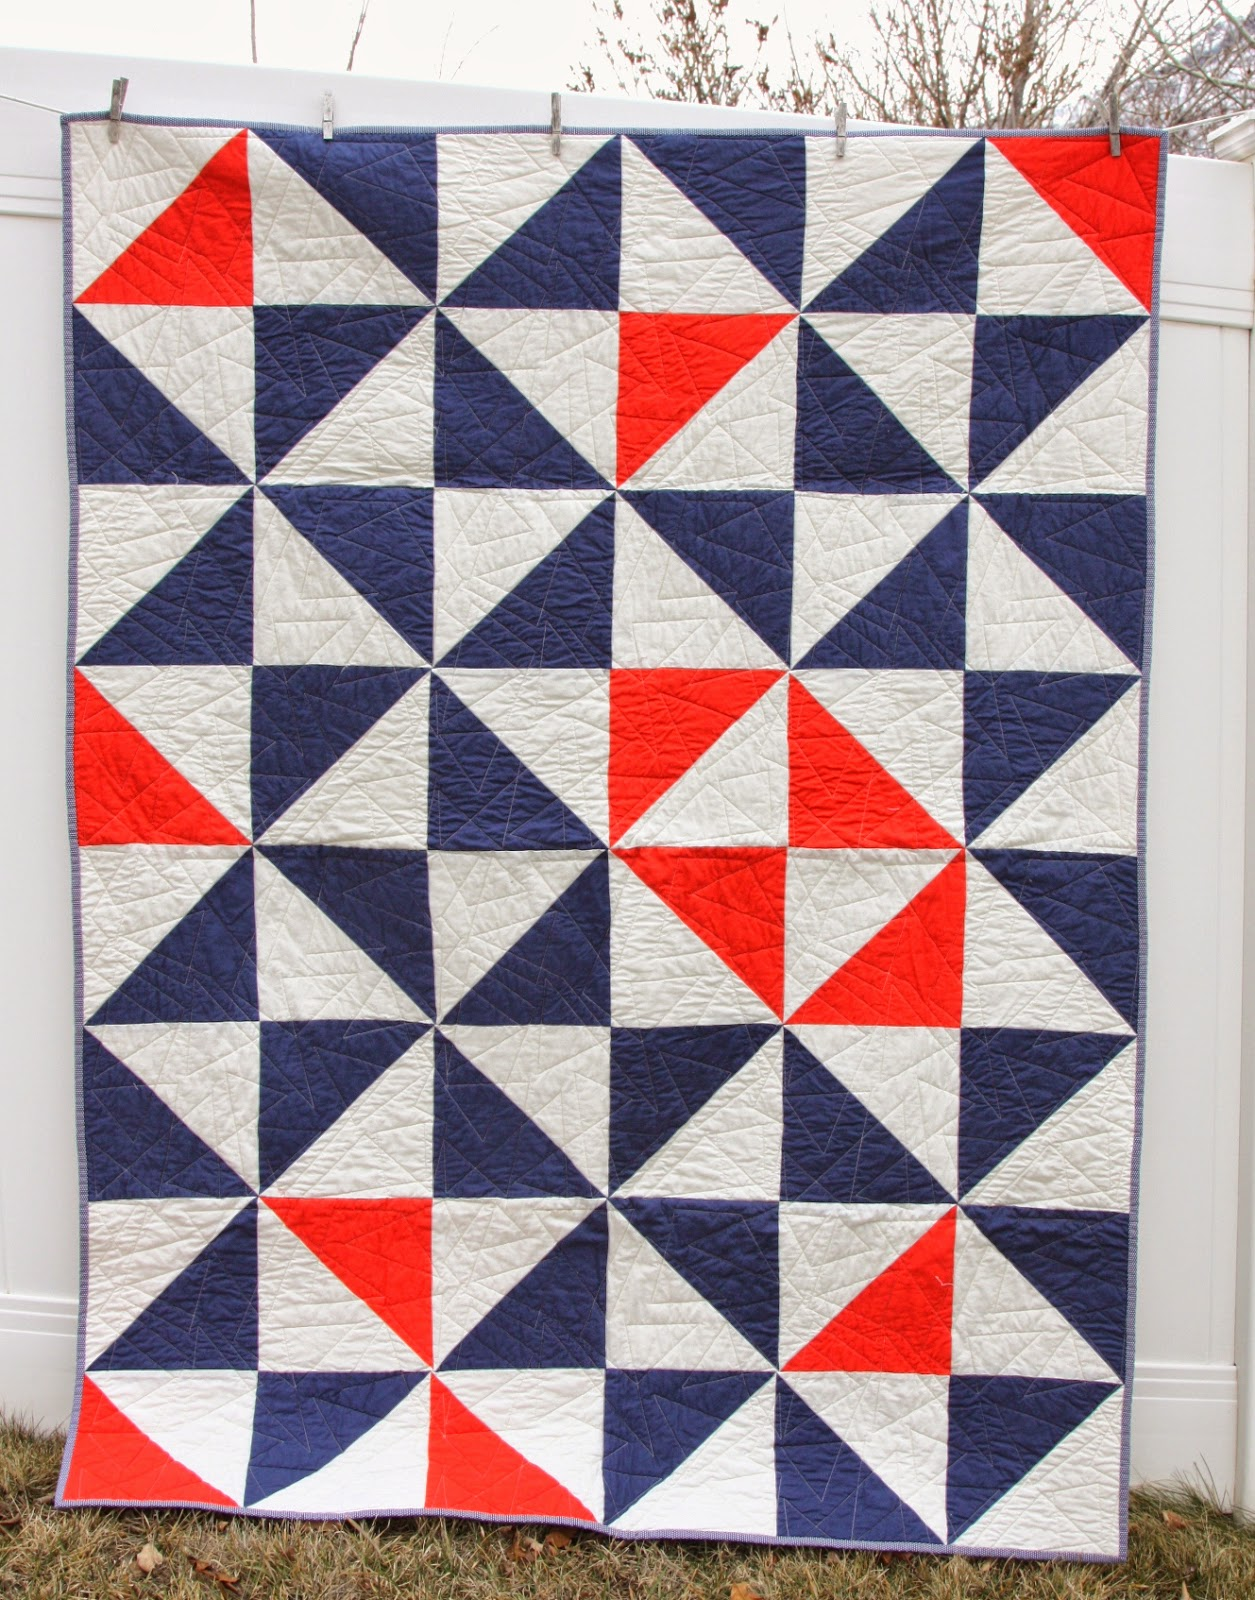 Crib size quilts for sale - Crib Size Quilts For Sale 58